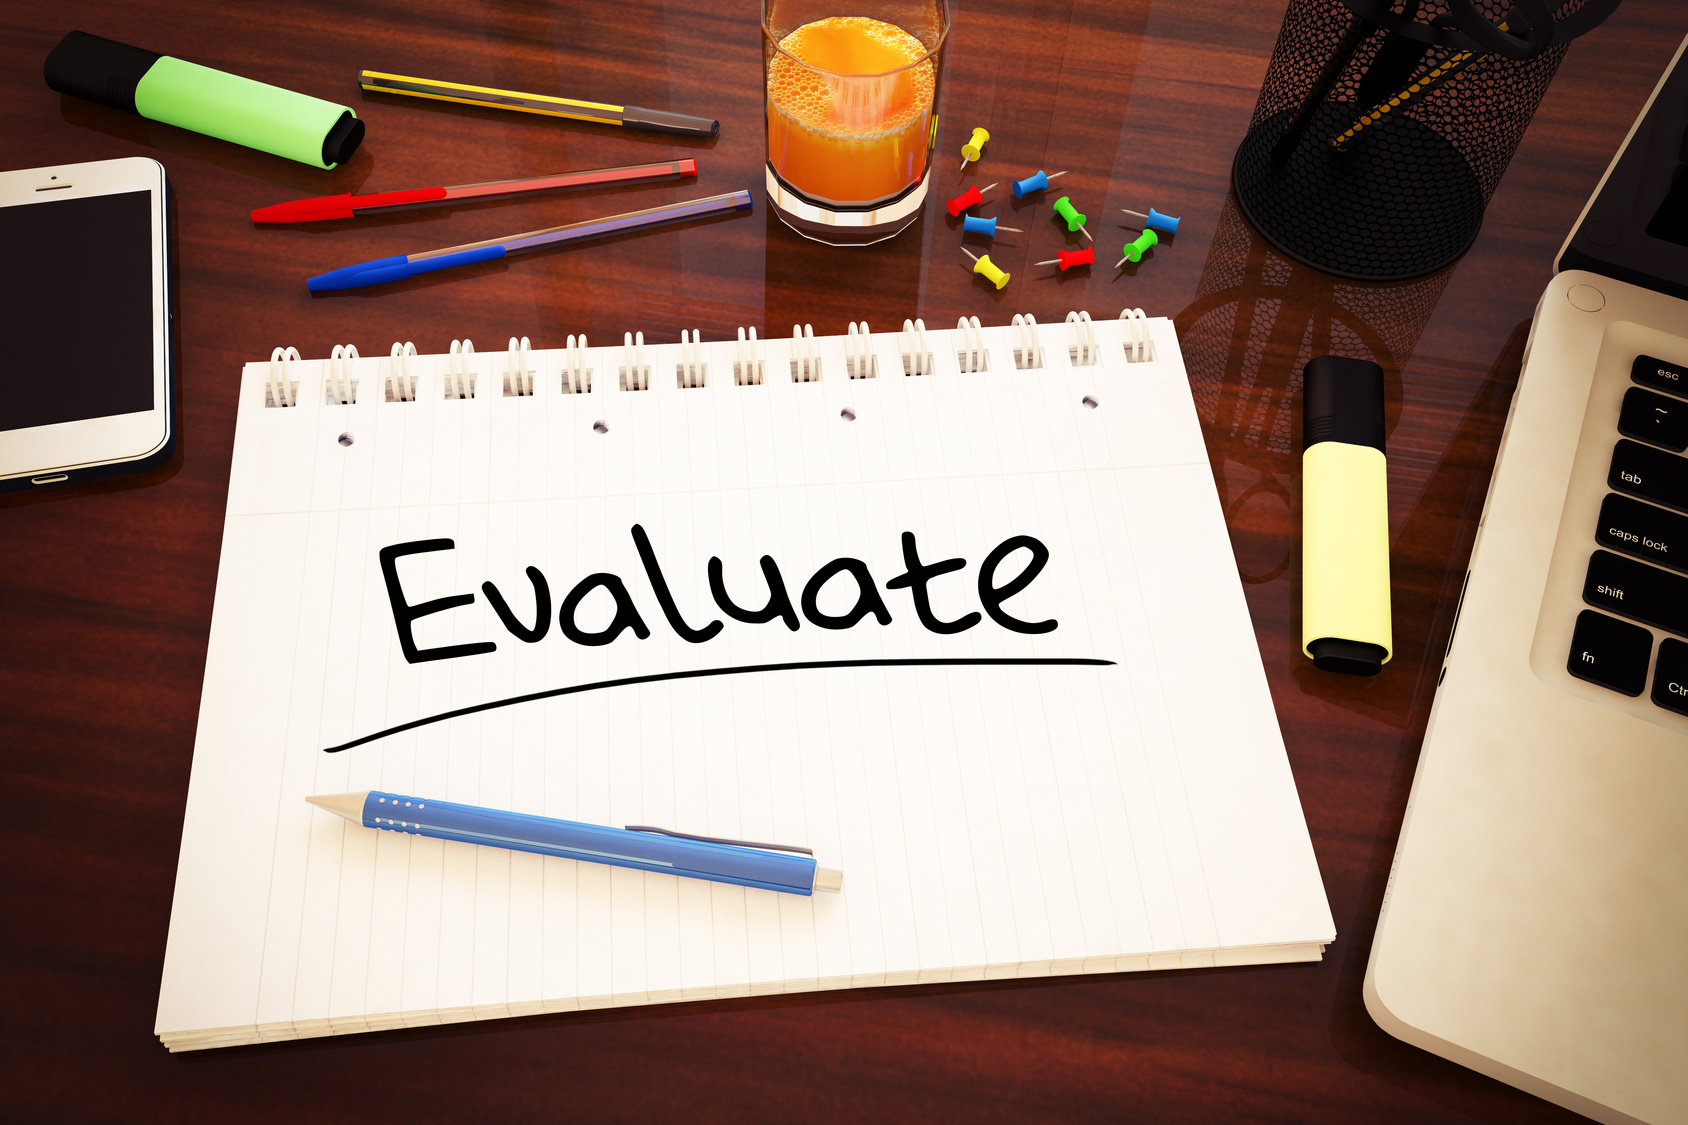 Evaluate on paper